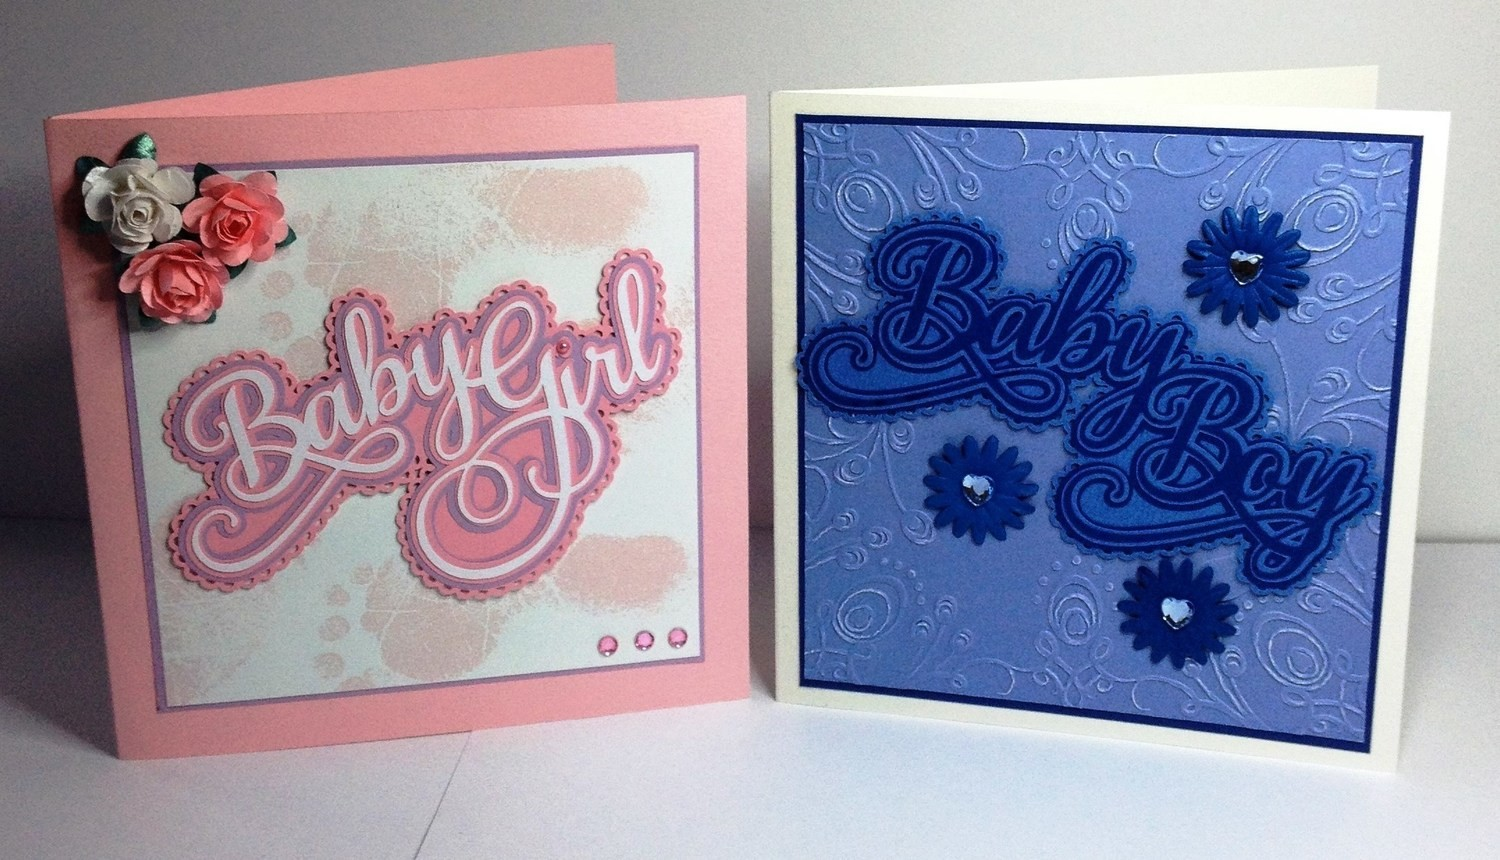 Baby Girl and Baby Boy + heart Decorative Card Toppers 4 lay